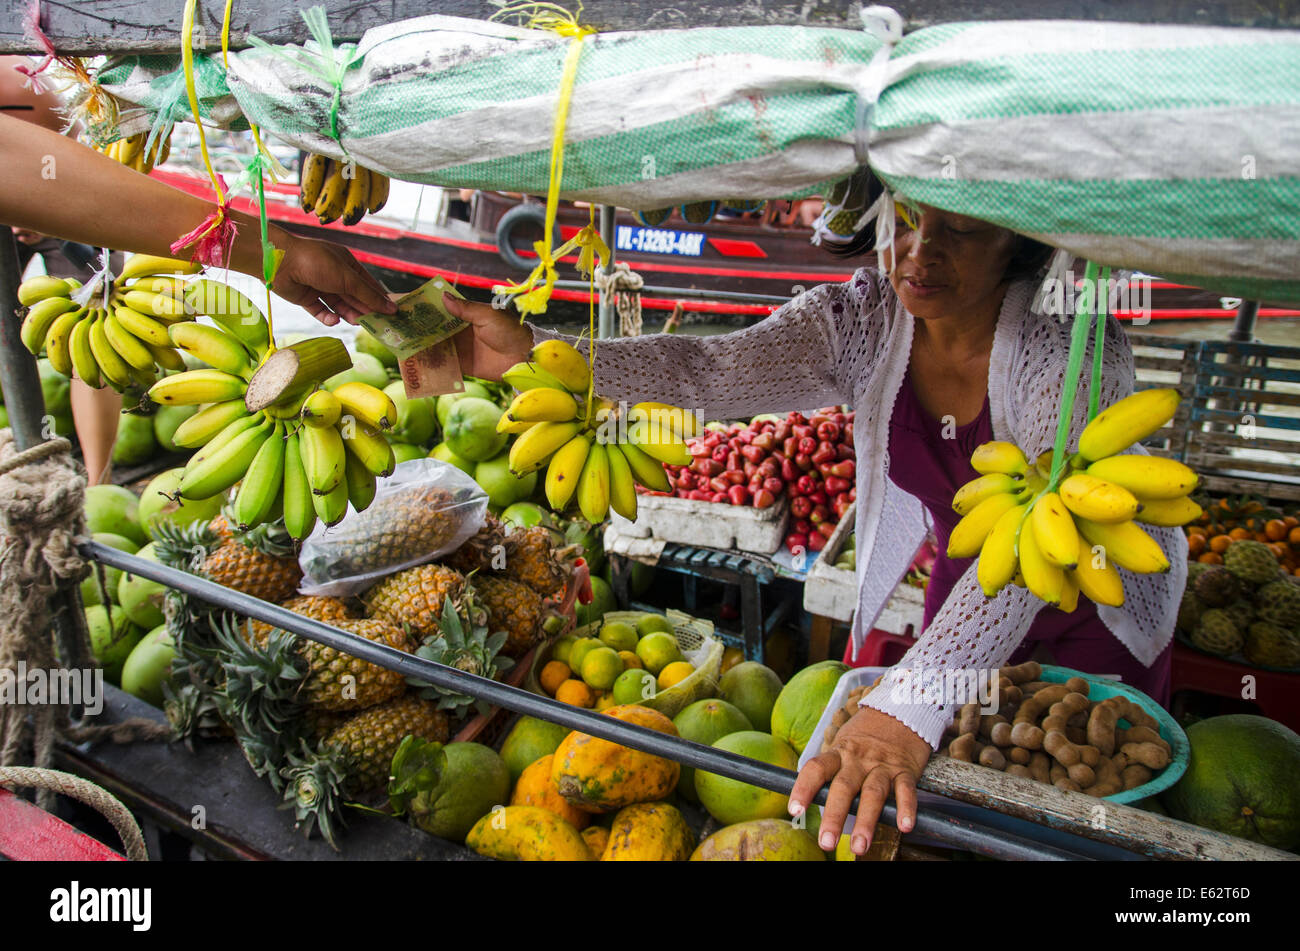 Woman selling fruit & vegetables on boat, Cai Be floating market, Vietnam - Stock Image